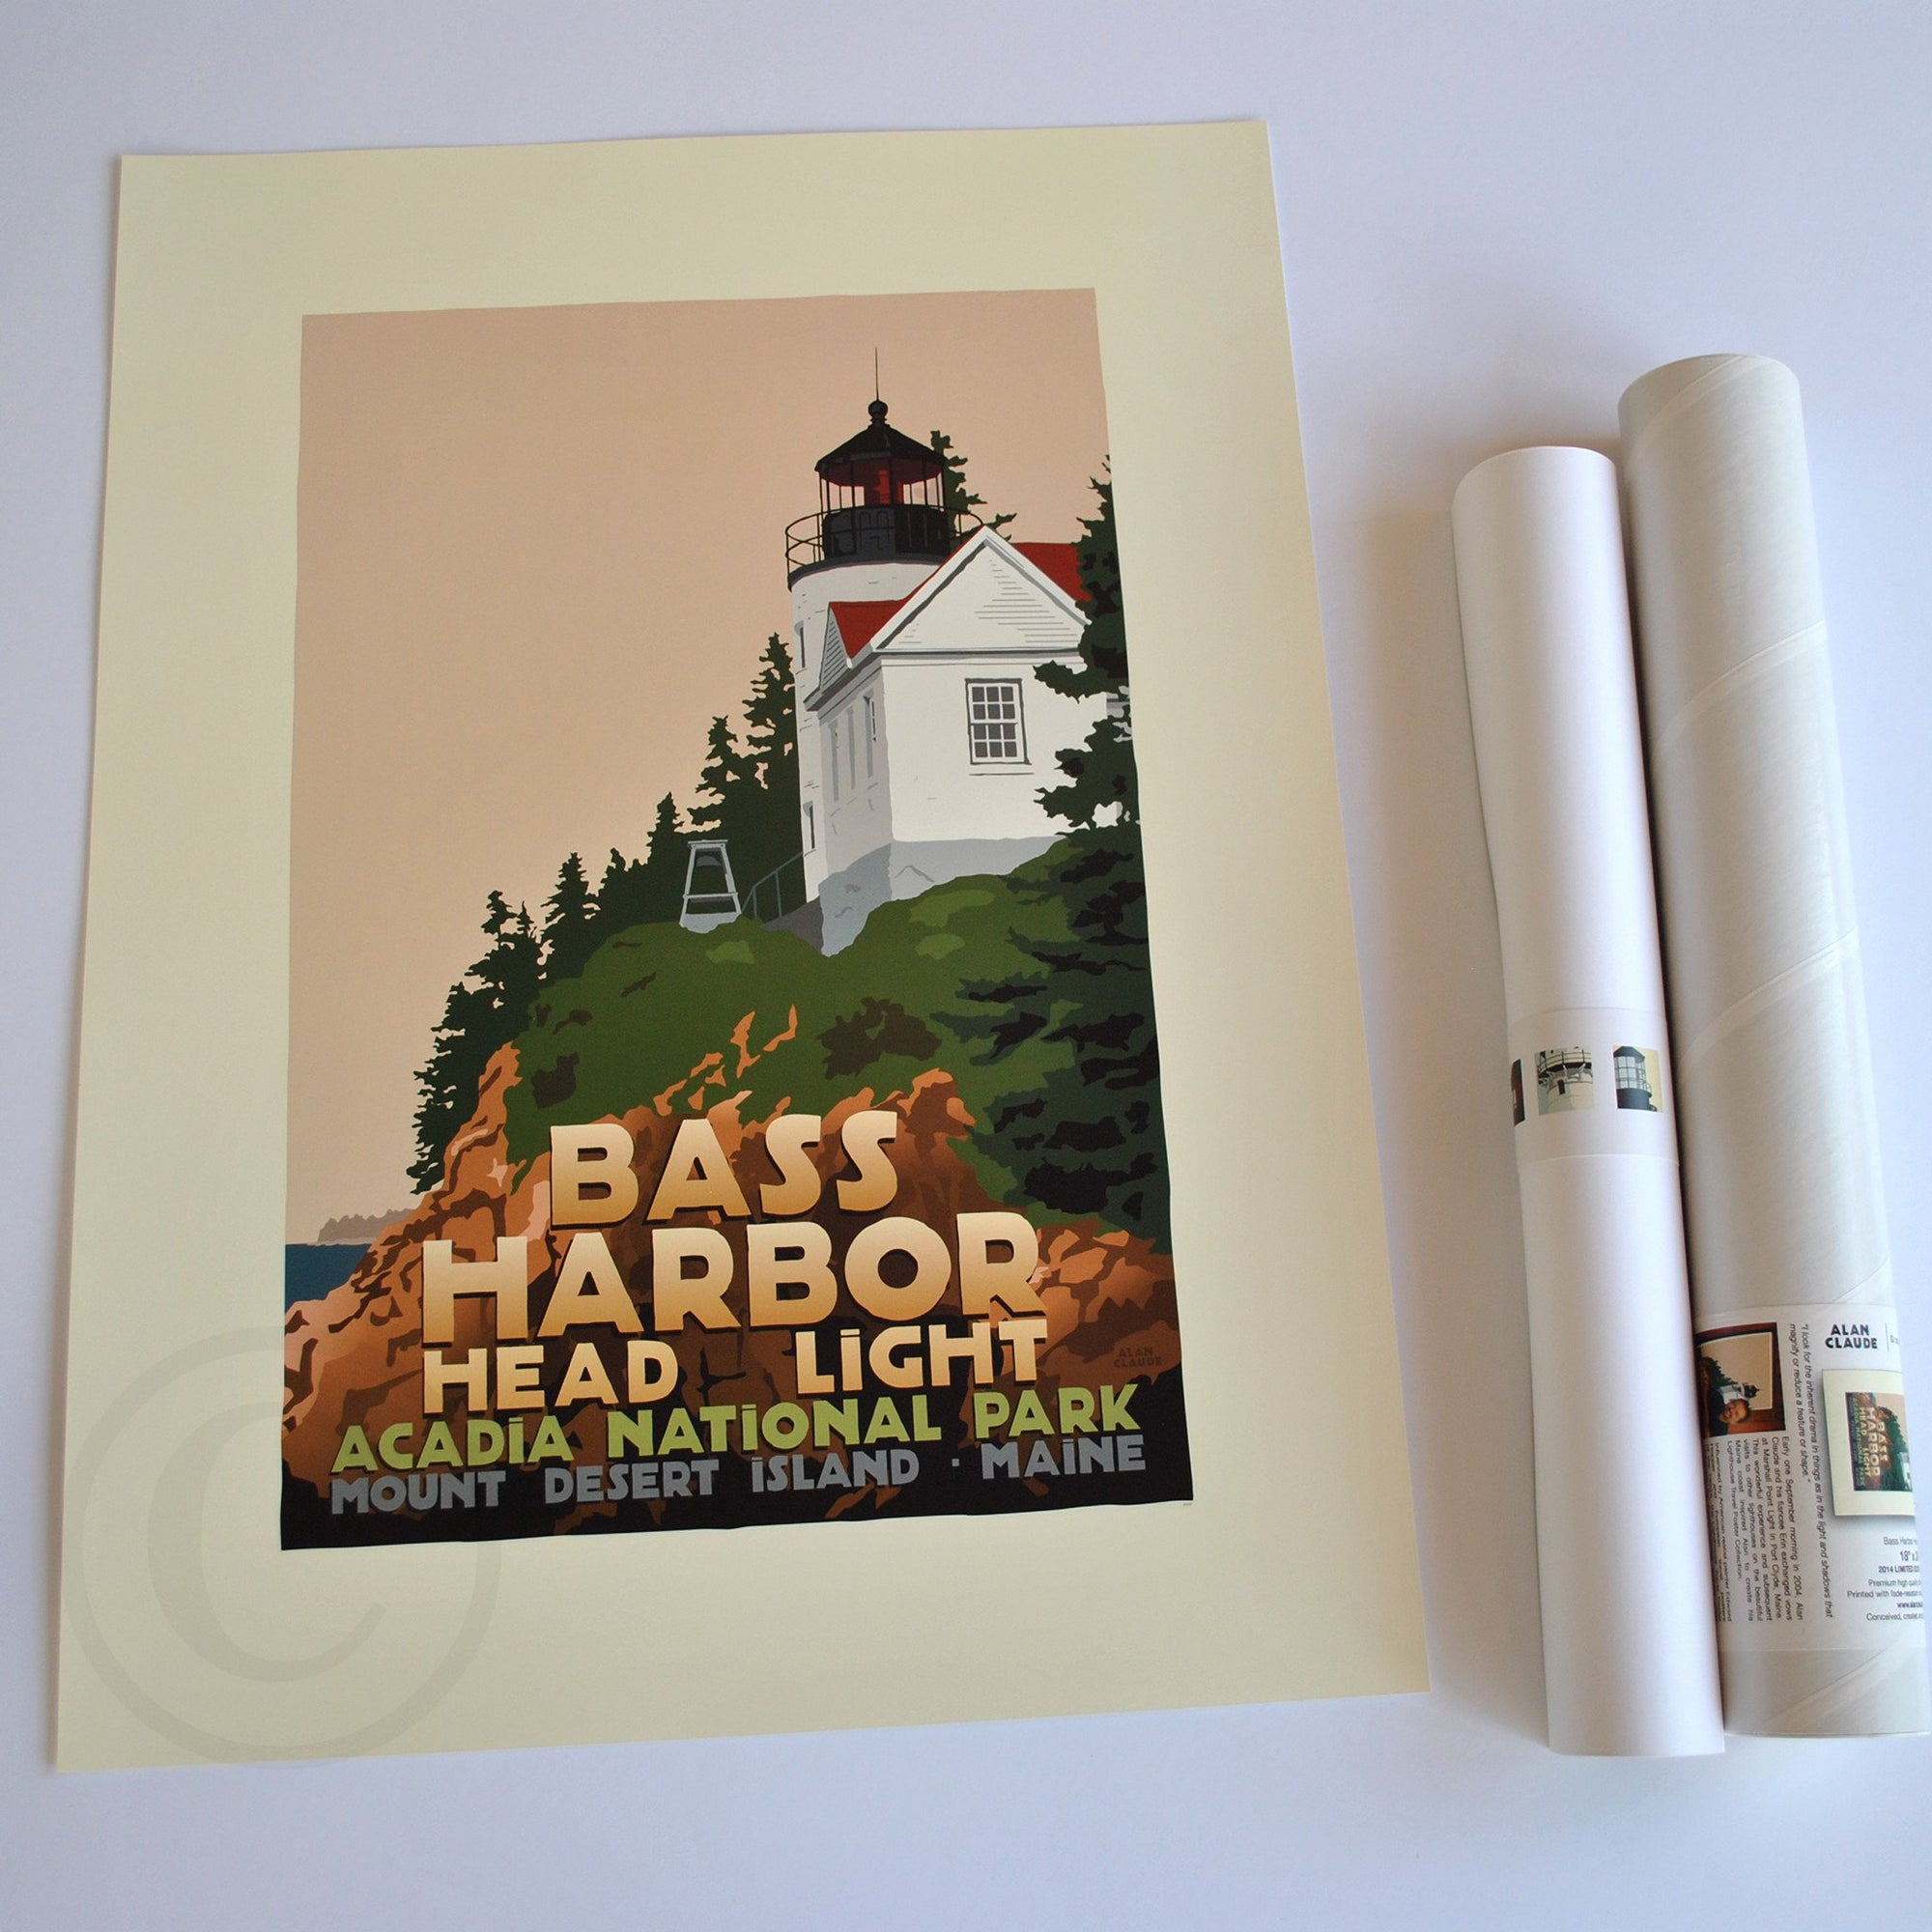 "Bass Harbor Head Light Art Print 18"" x 24"" Travel Poster - Maine"